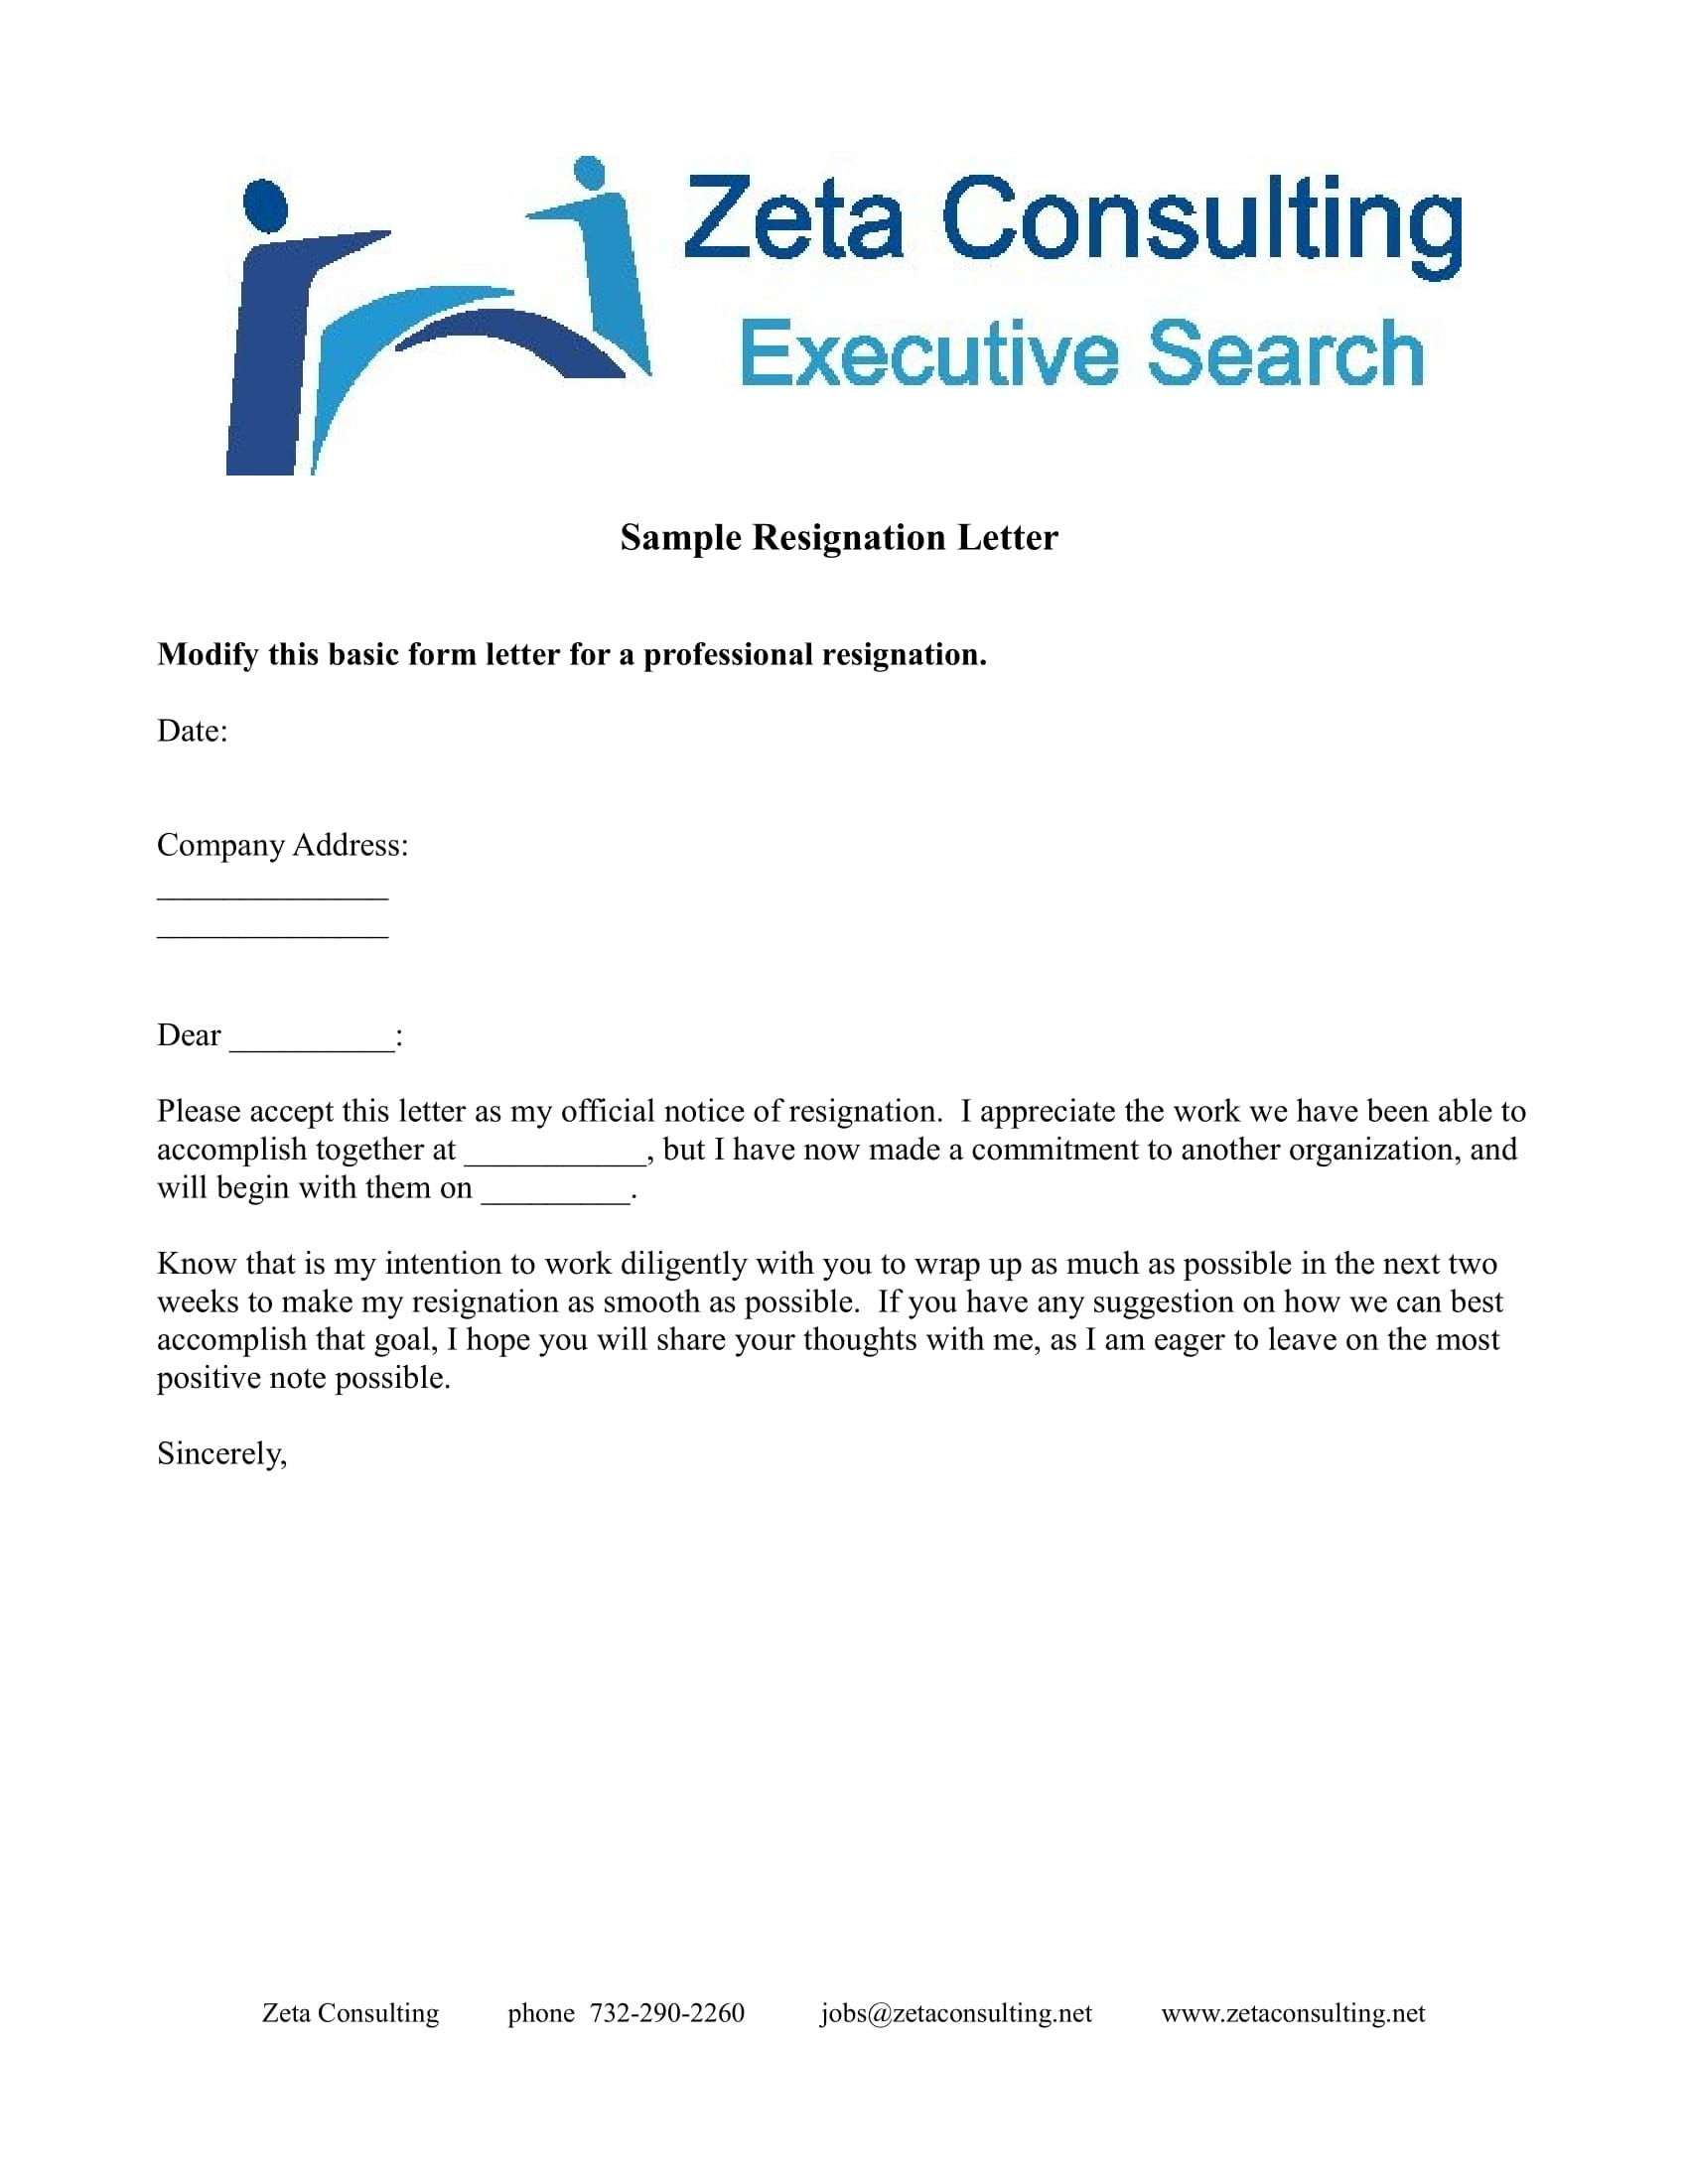 25+ Simple Resignation Letter Examples - PDF, Word | Examples